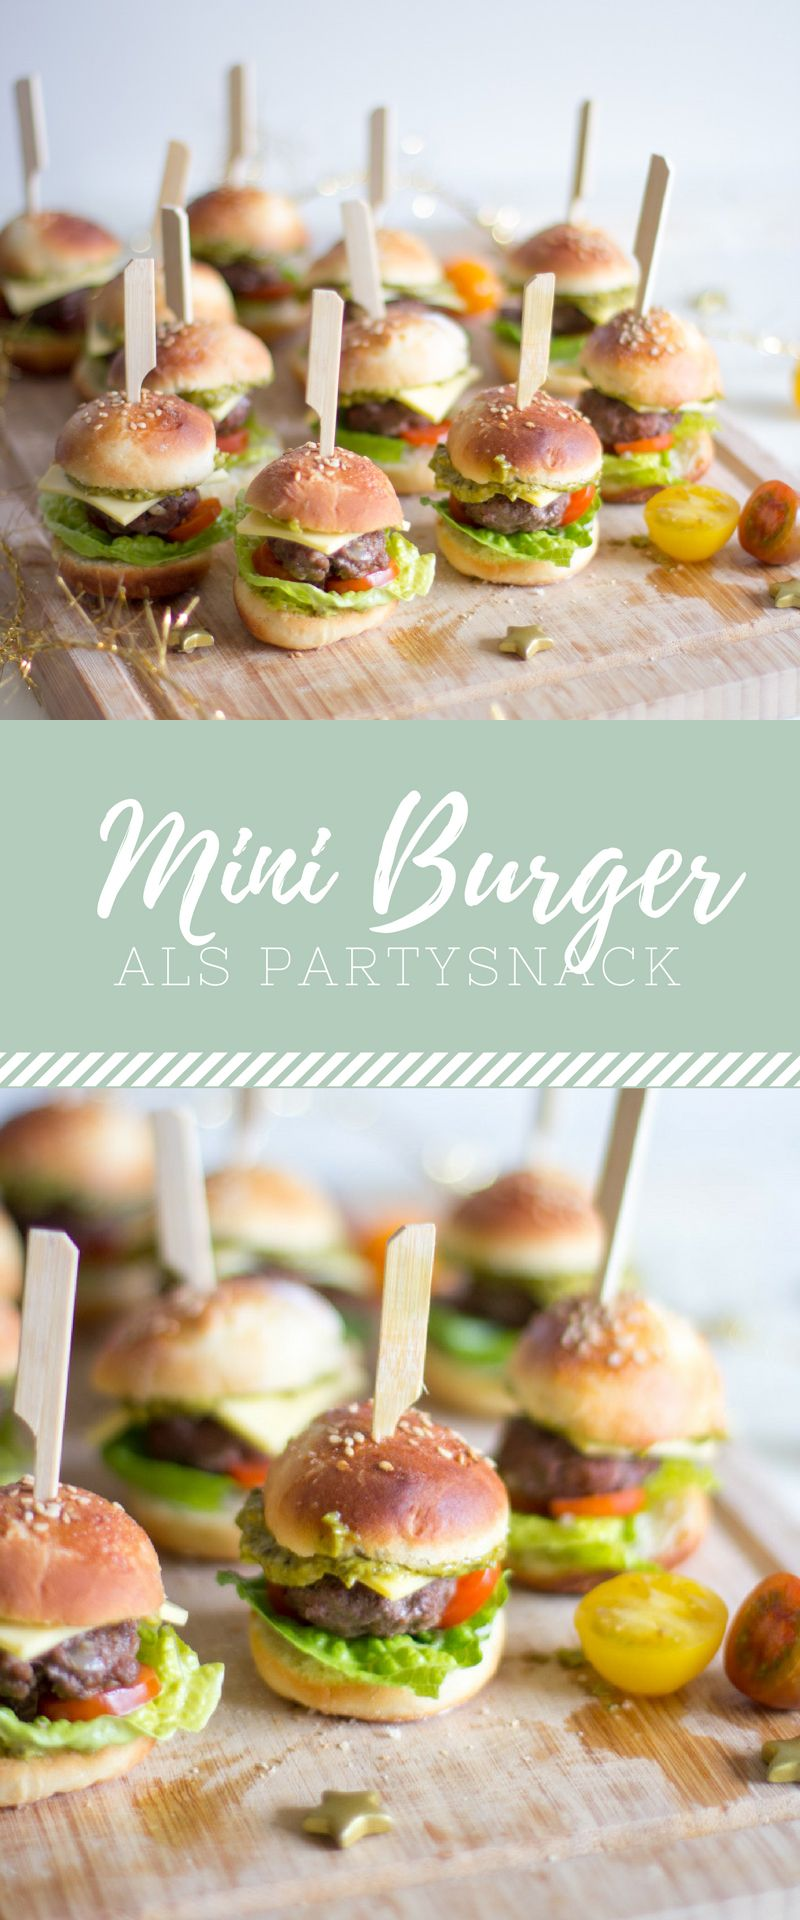 der perfekte party snack mini burger rezepte trytrytry pinterest fingerfood snacks. Black Bedroom Furniture Sets. Home Design Ideas